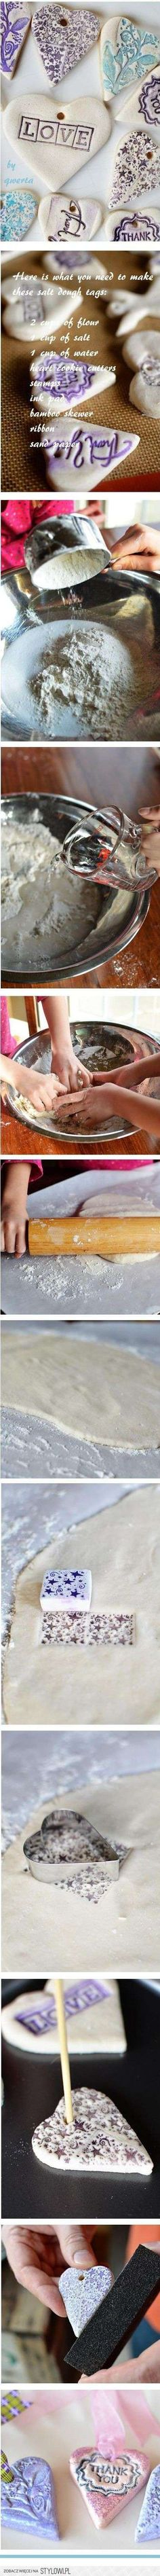 Stamped salt dough tutorial.